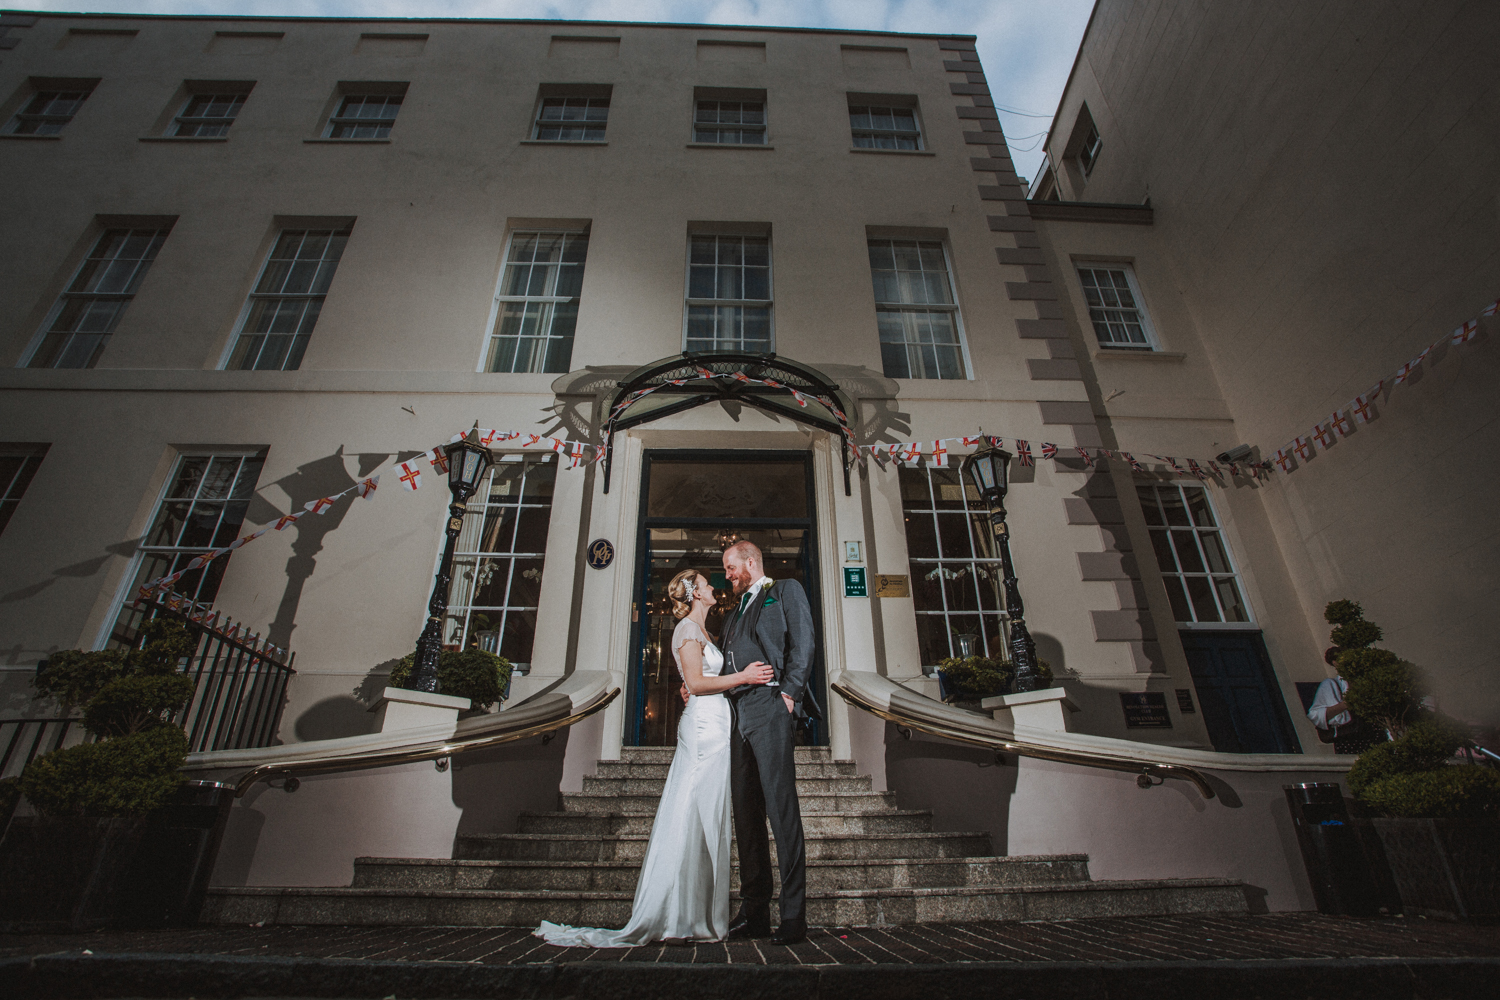 wedding photographers in guernsey89.jpg